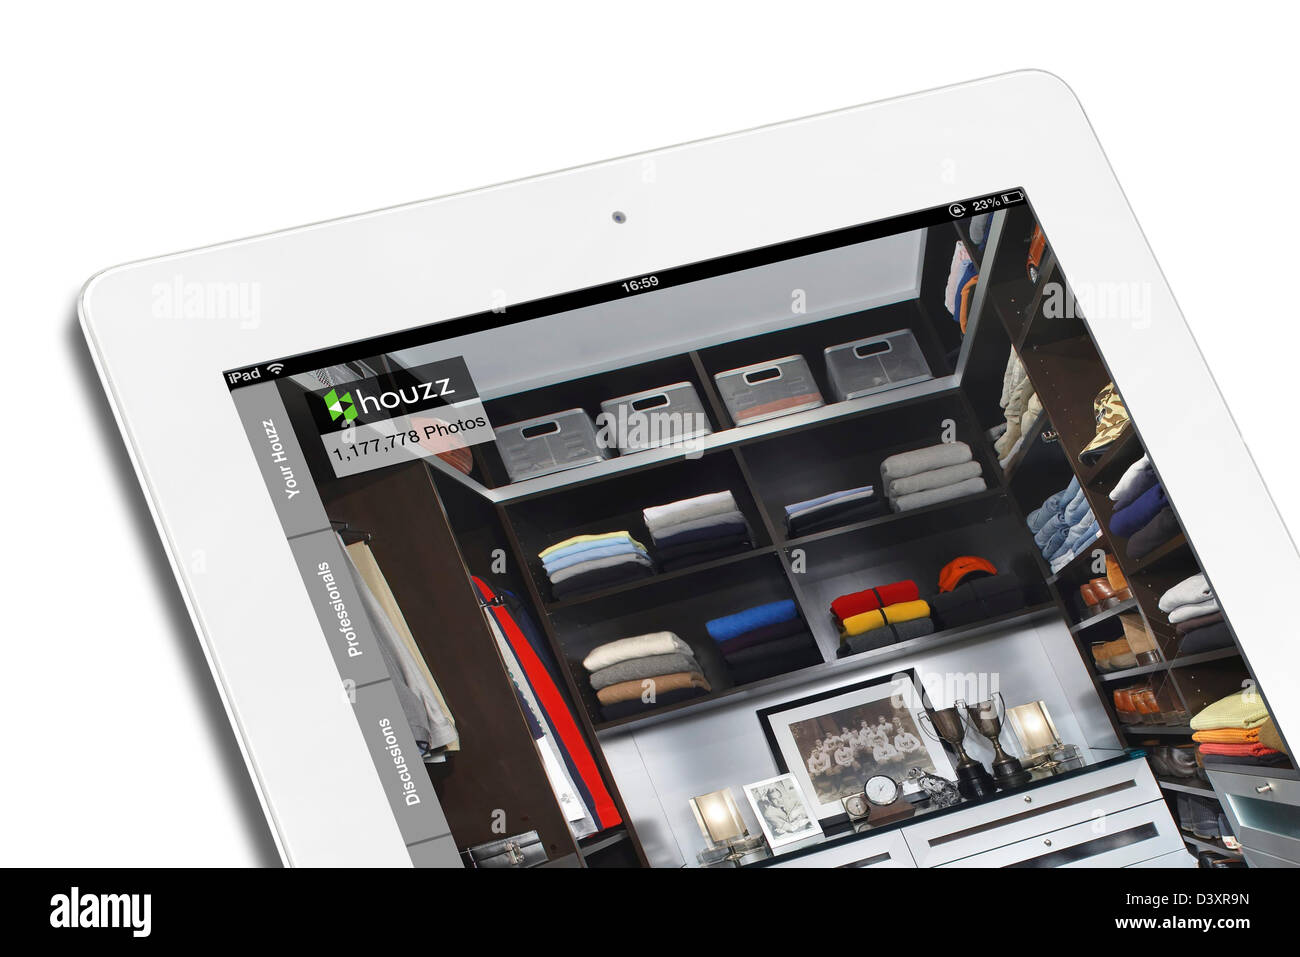 The Houzz.com design, architecture and home improvement site viewed on an iPad 4 - Stock Image